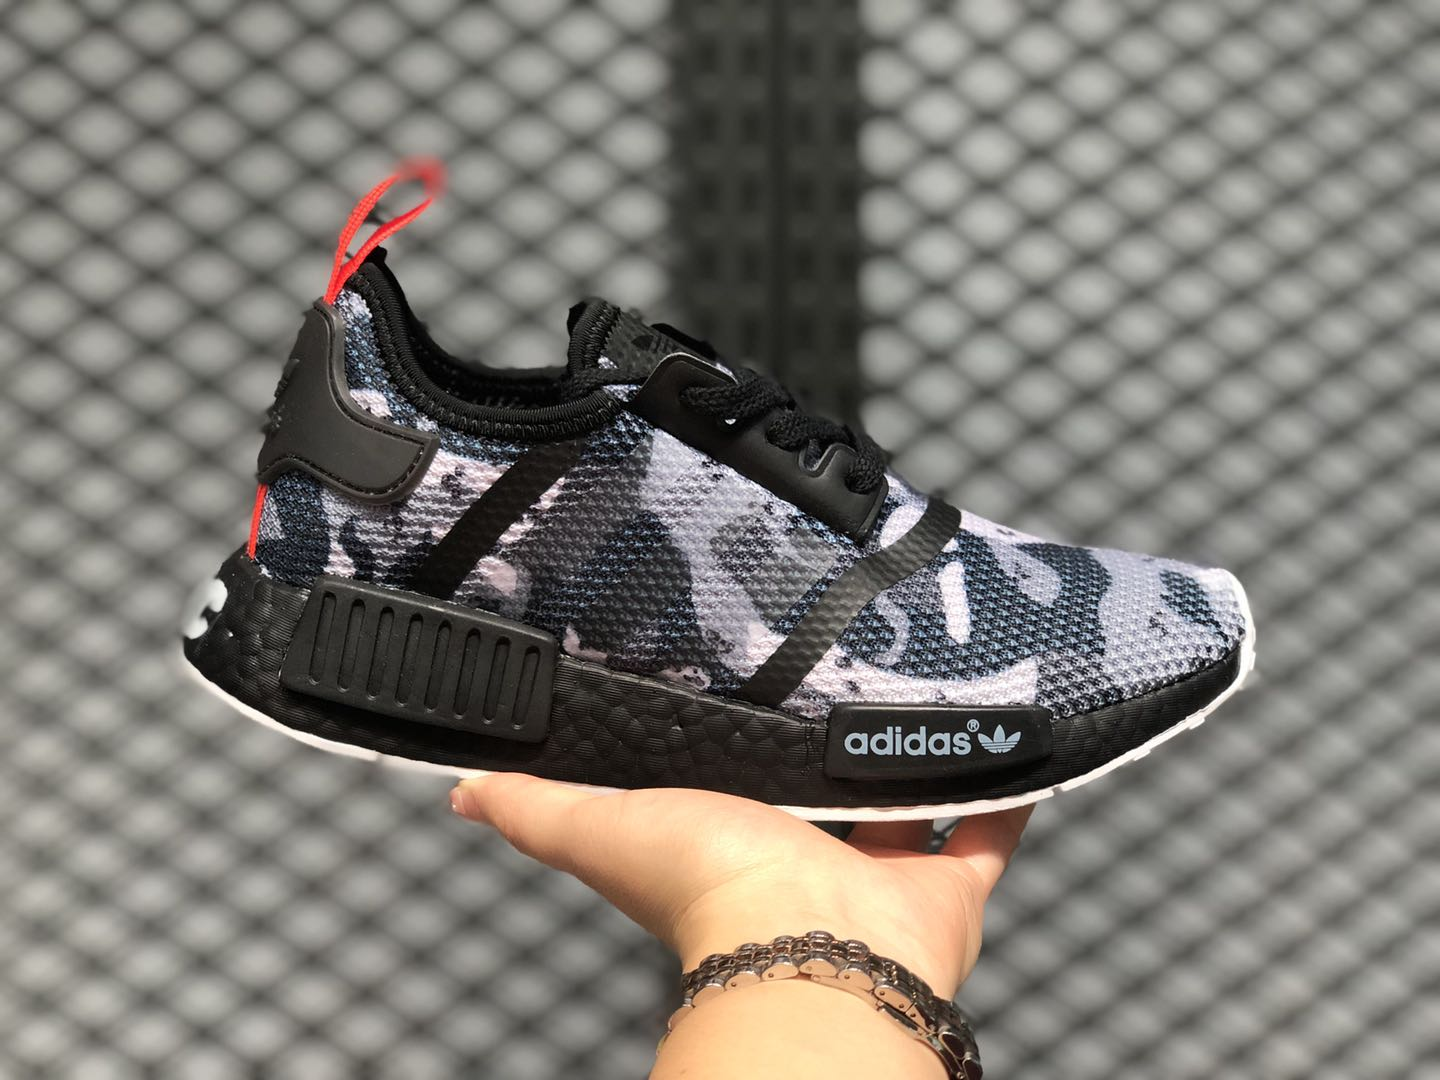 Latest Adidas Nmd R1 Nyc Camo Black Training Shoes G28414